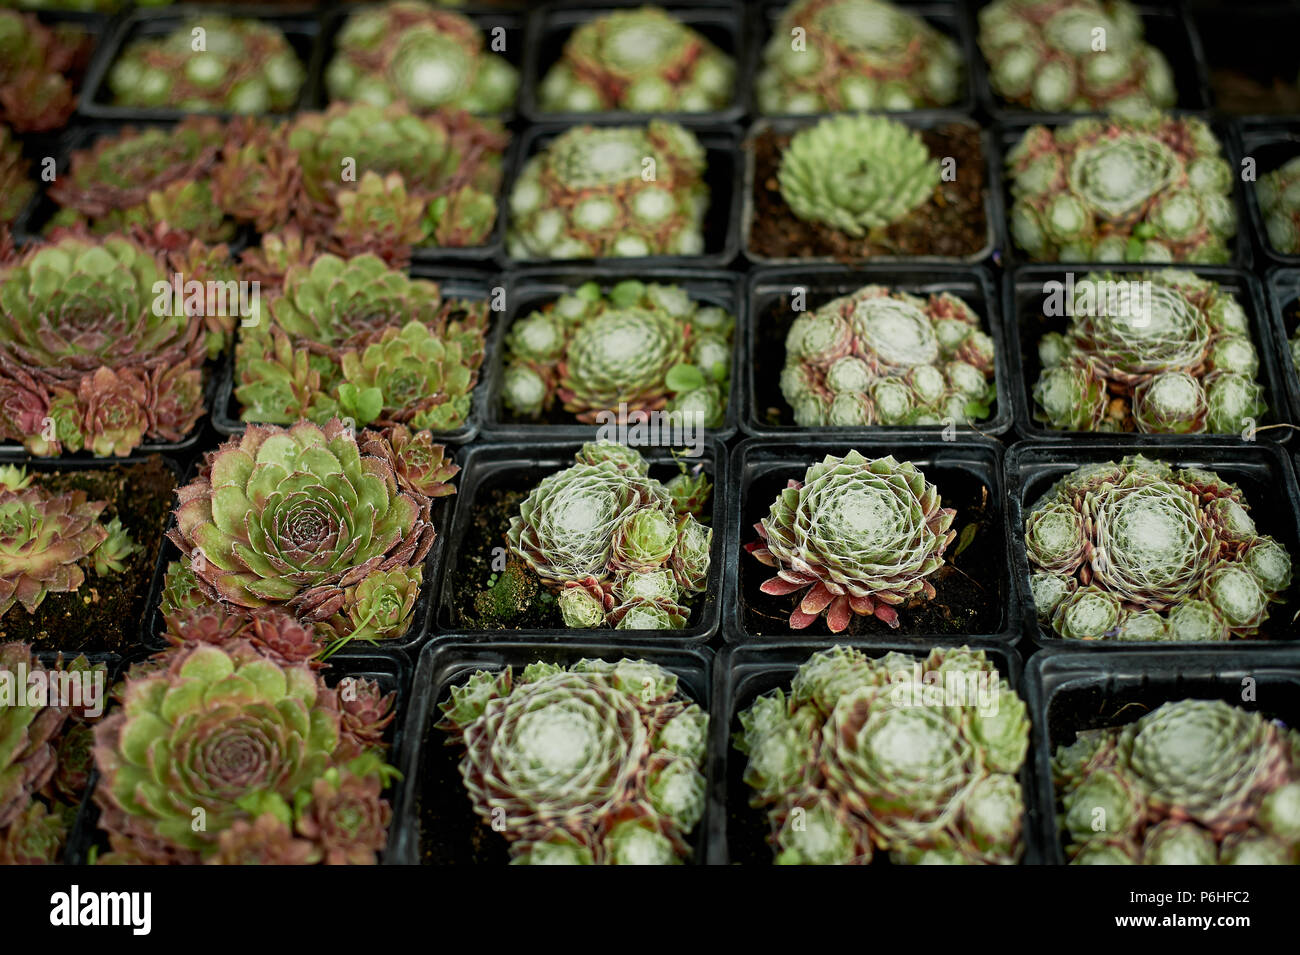 Cactus Pots For Sale Succulents For Sale Stock Photos And Succulents For Sale